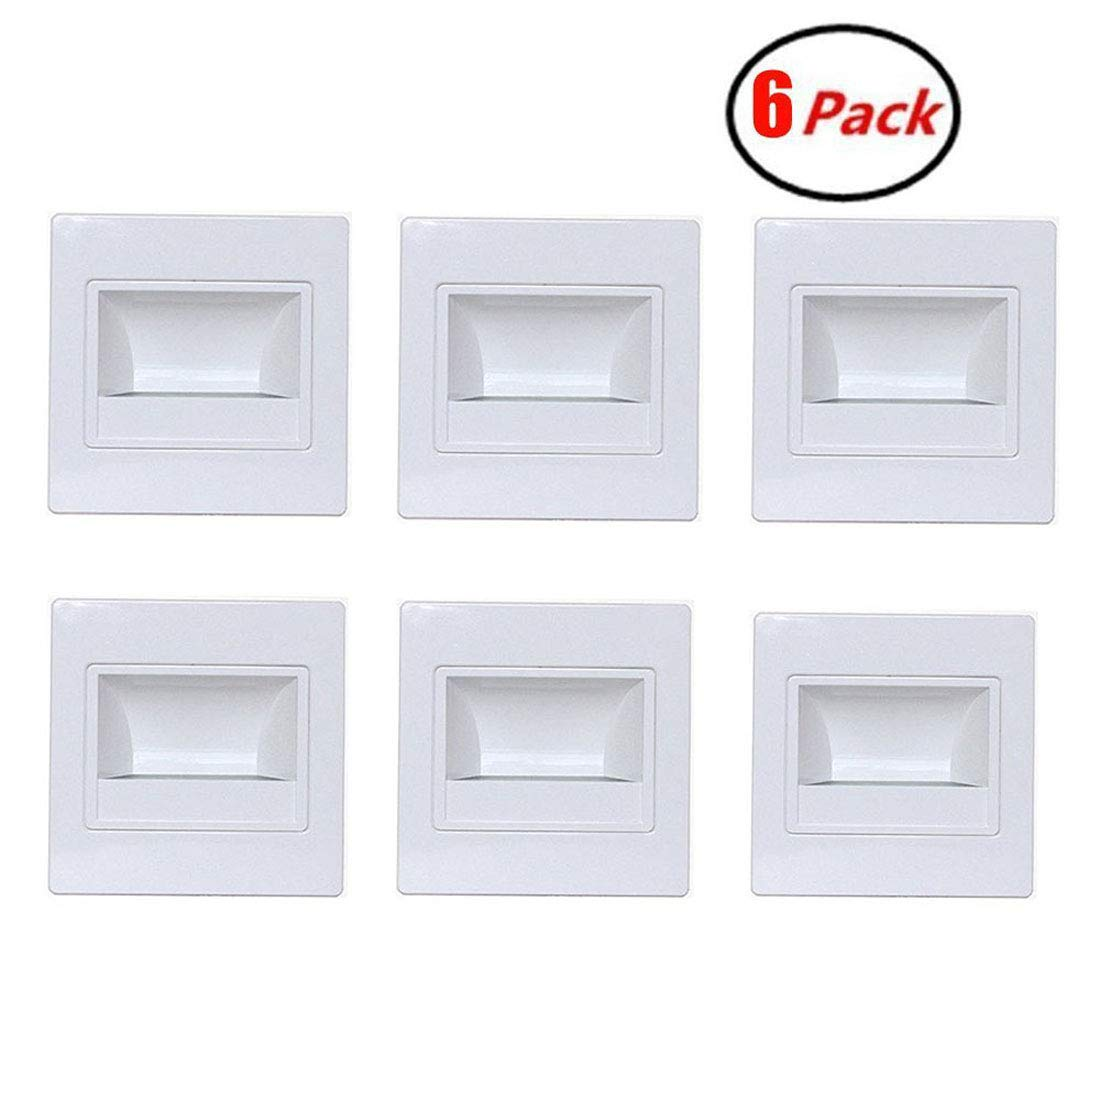 Dreamworth 6-Pack LED Corner Wall Lamp 85-265V Embedded LED Stairs Step Night Light LED Stair Wall Lighting for Hallway, Stairs, Closet, Bedroom And More